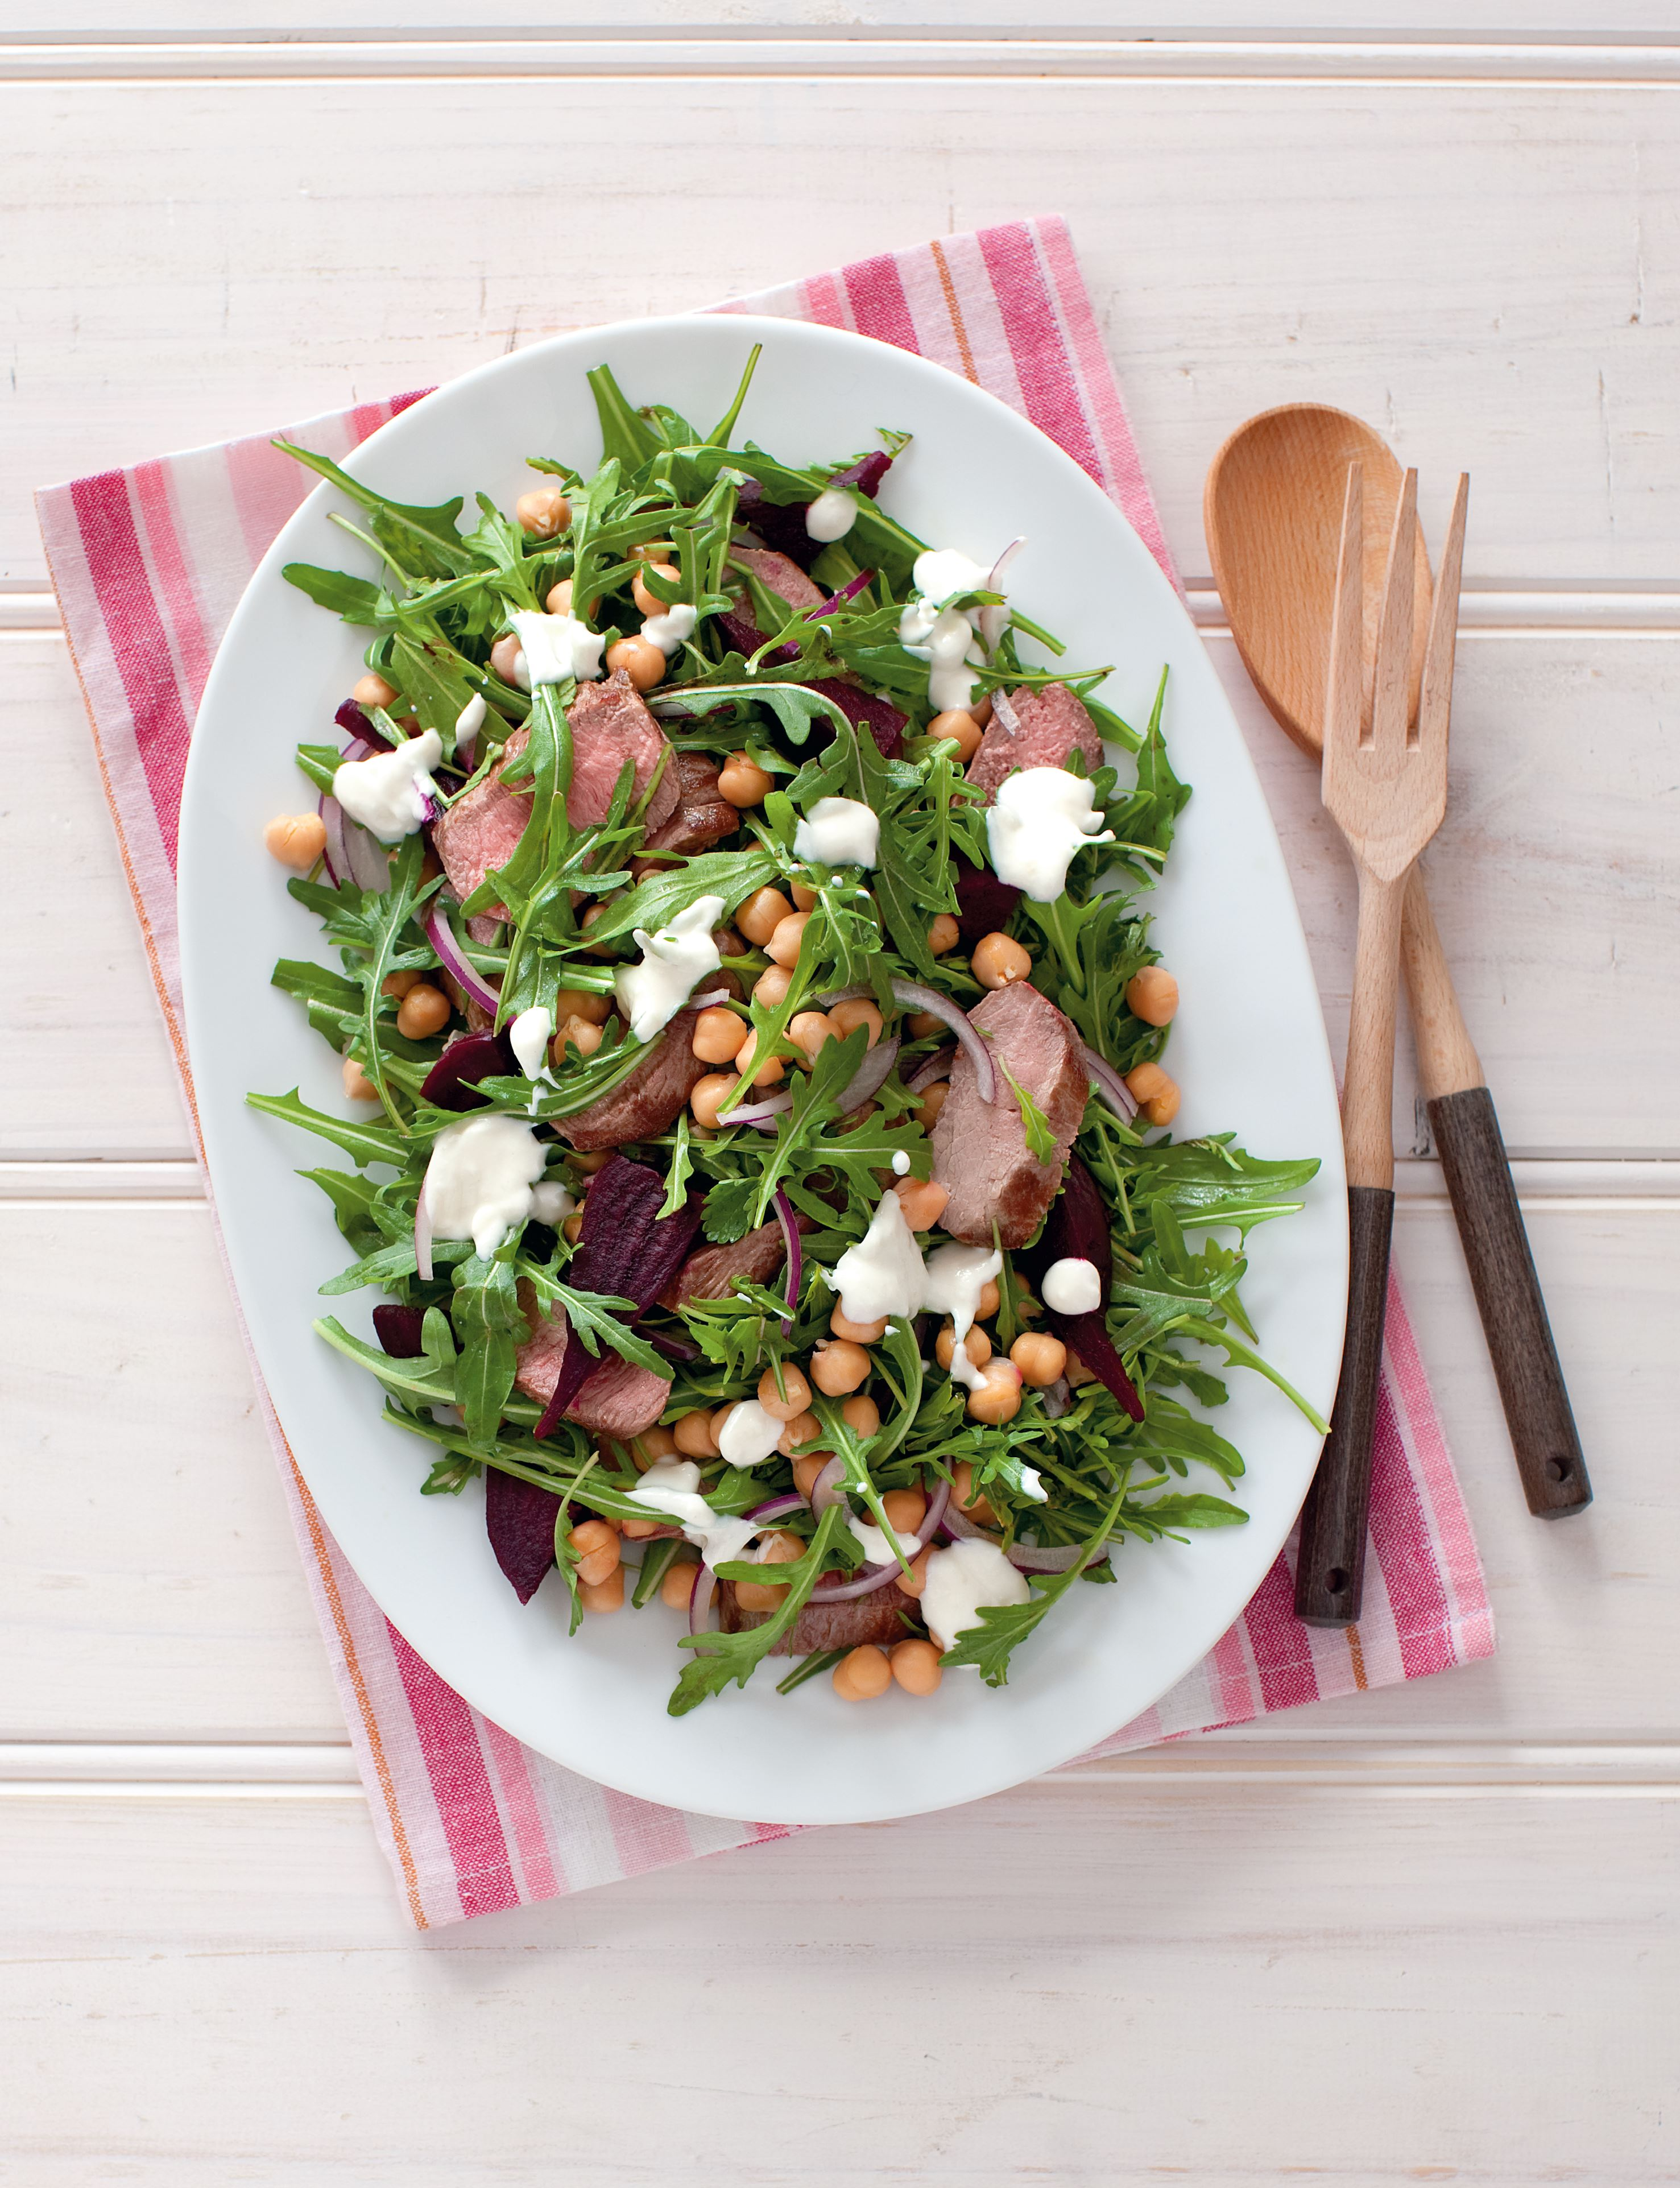 Lamb, beetroot, rocket and yoghurt salad